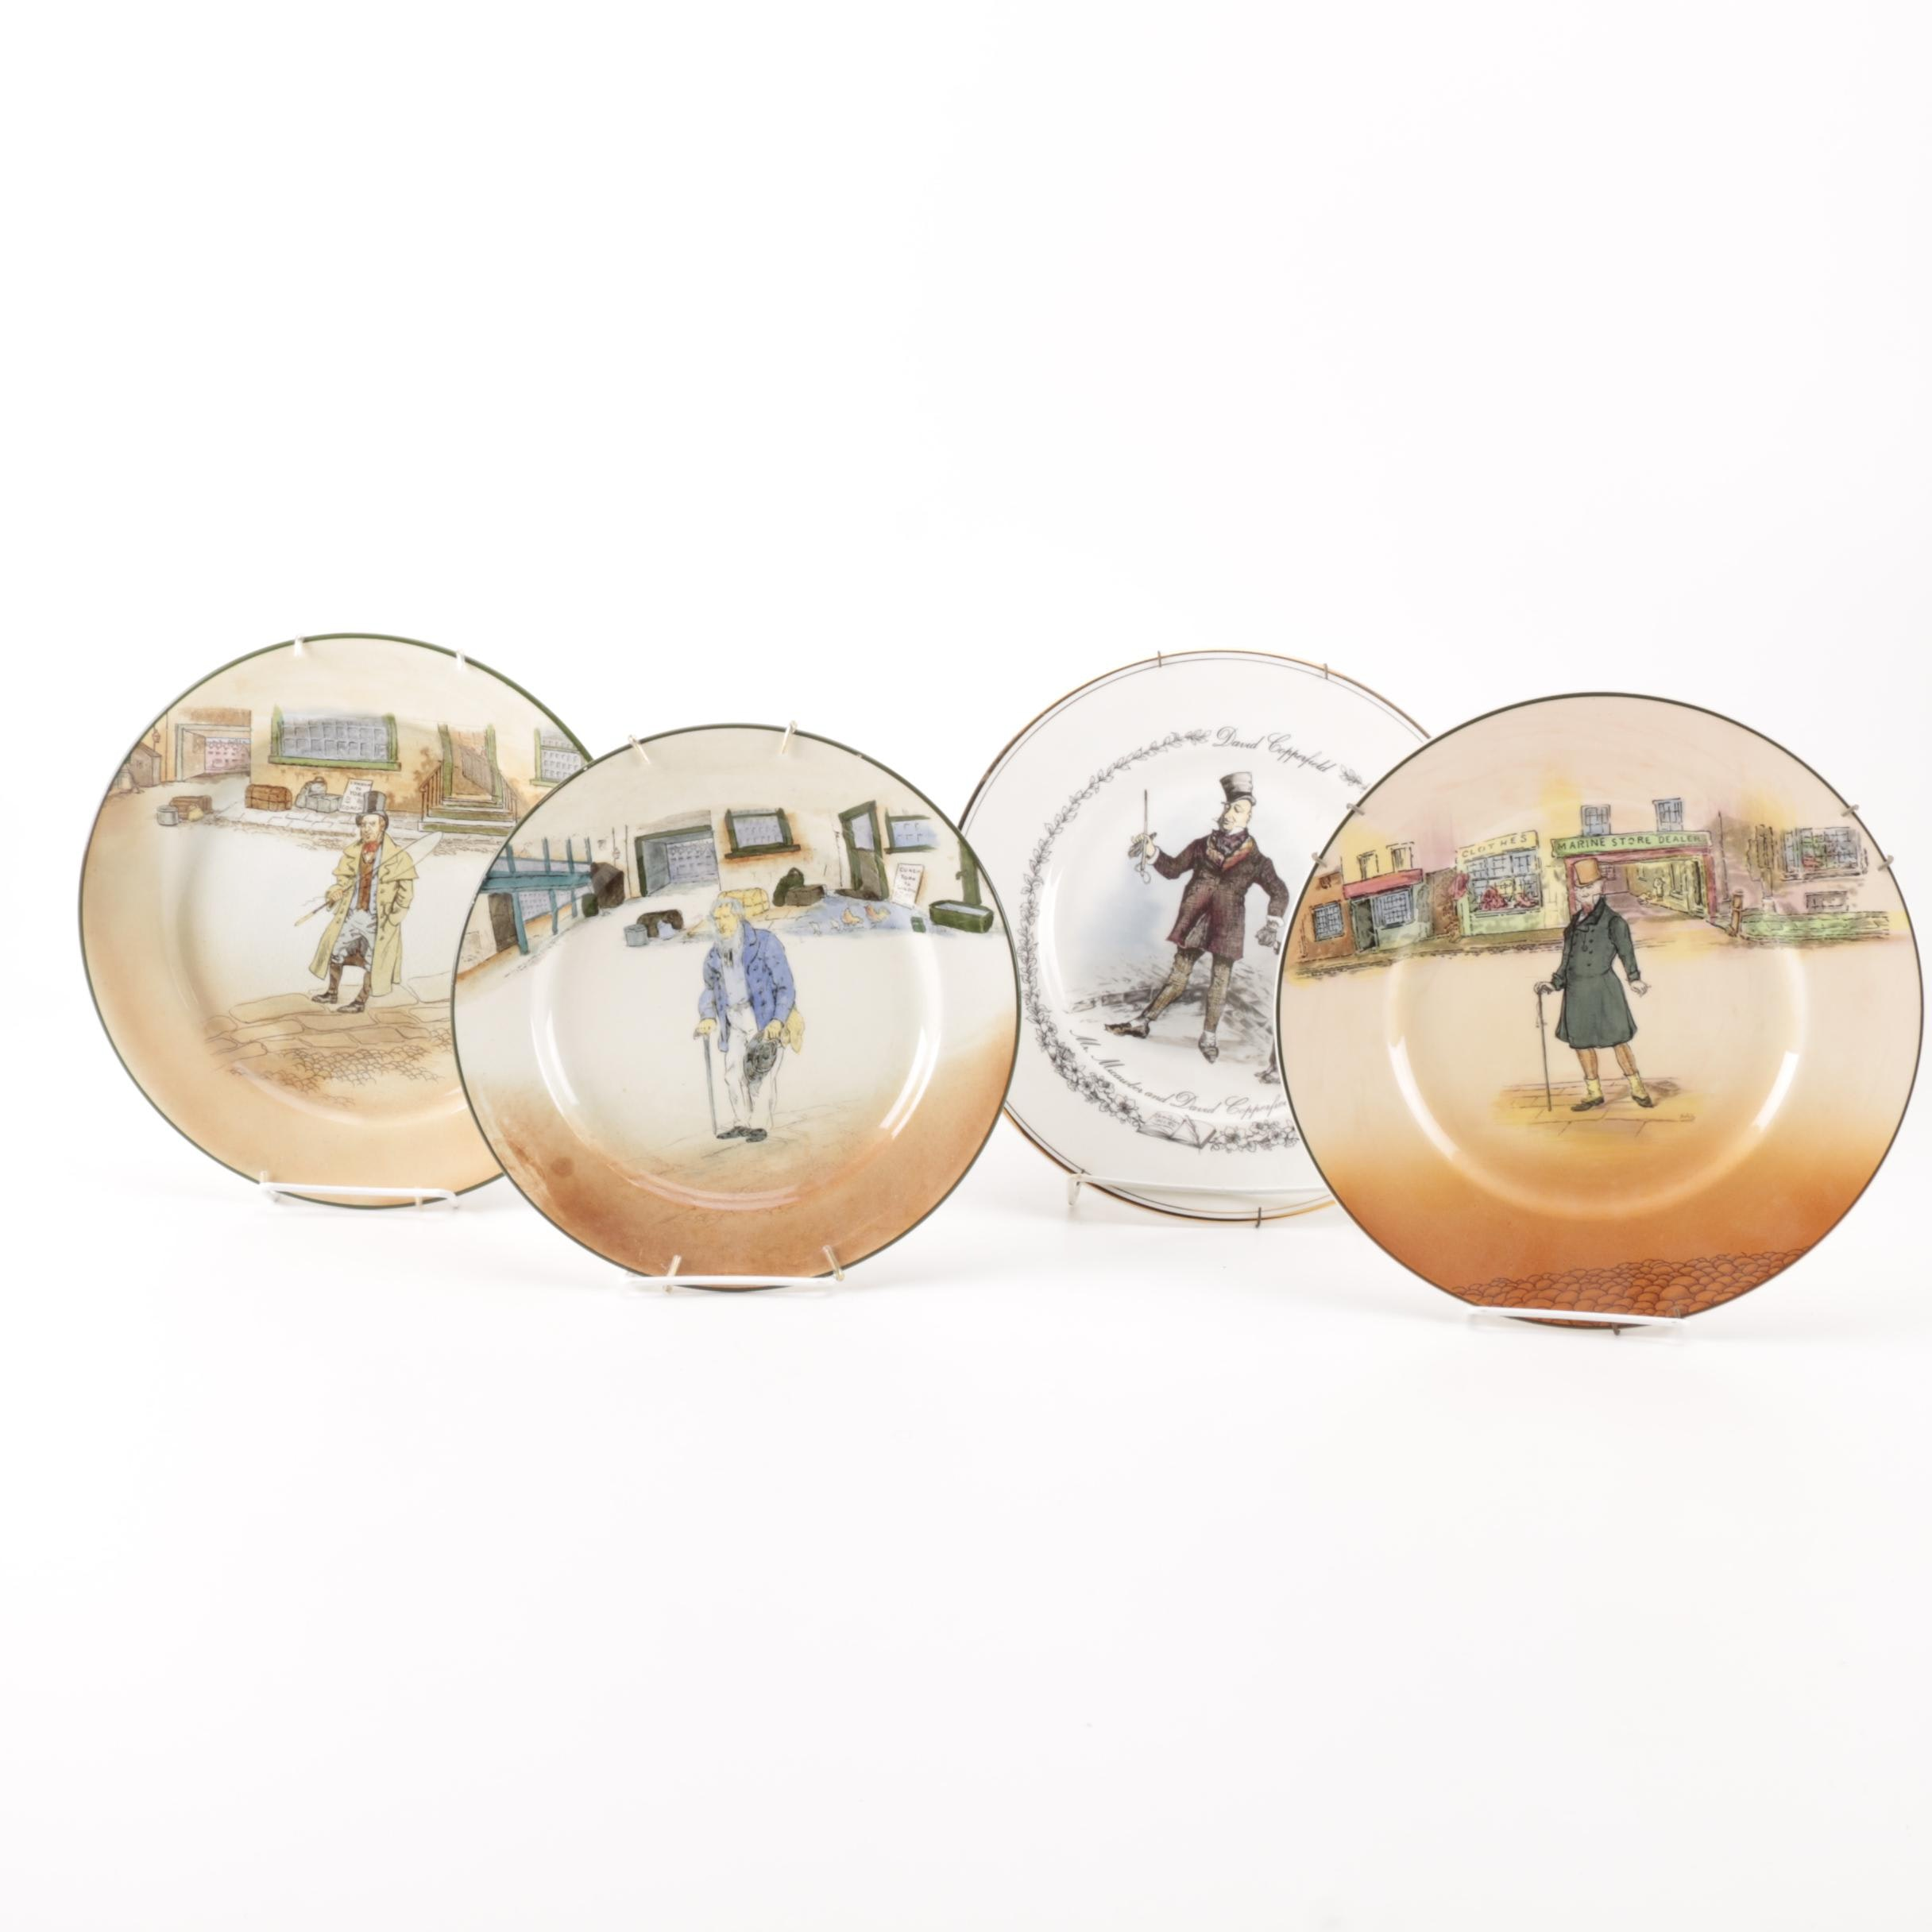 "Royal Doulton Dickens Ware Collector's Plates of ""David Copperfield"" Characters"